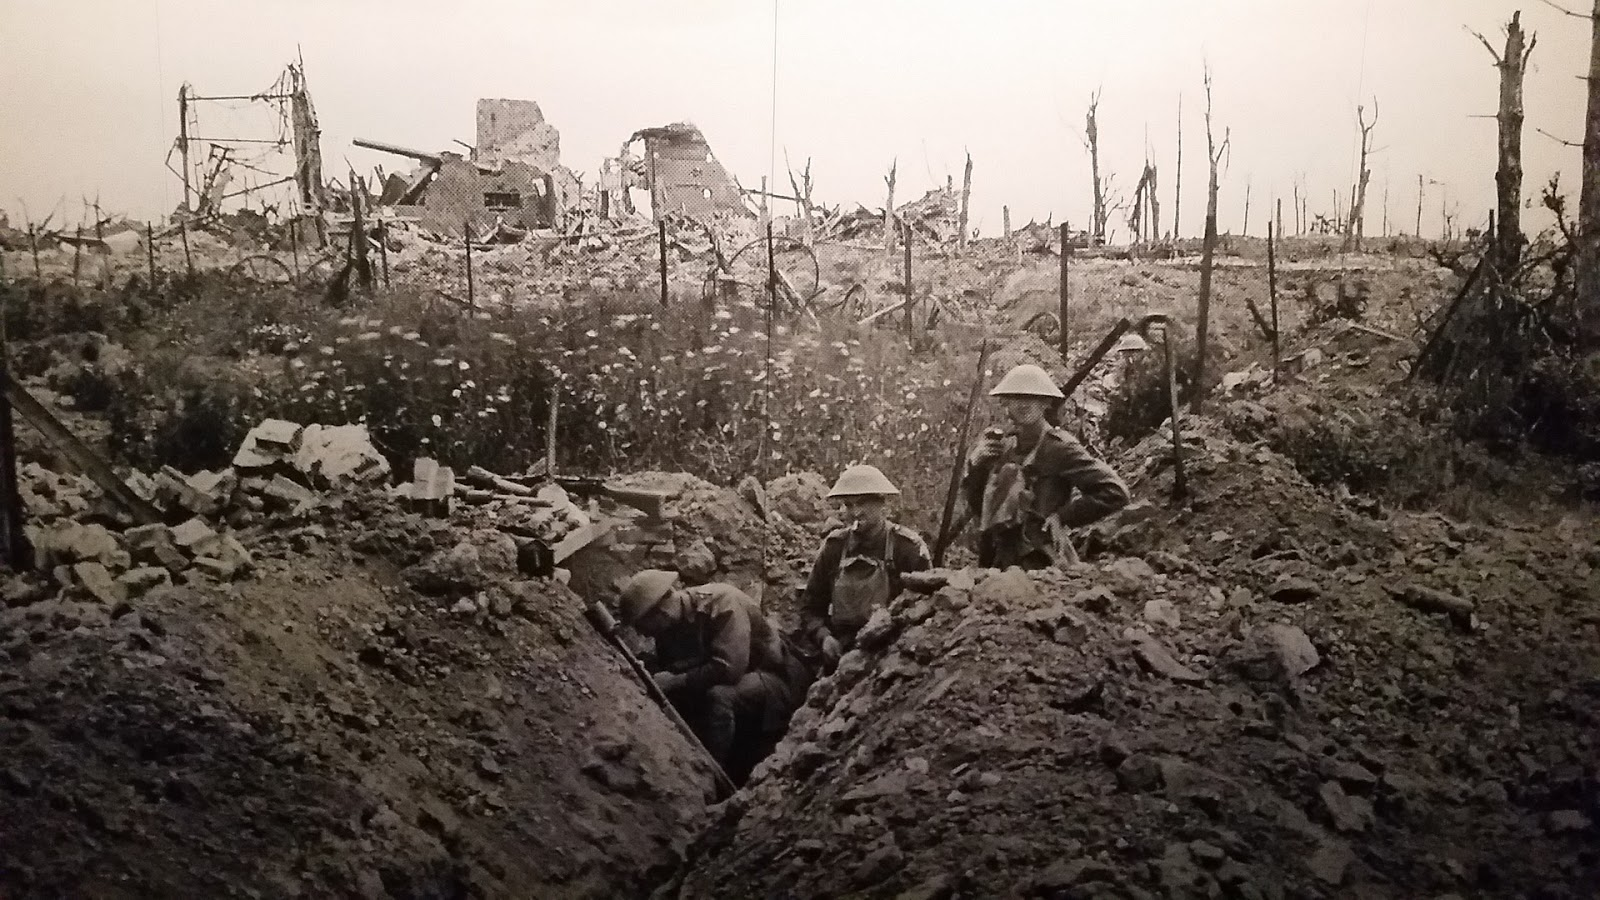 black and whtie photo of several soldiers standing in the trenches to illustrate a blog post about the movie 1917